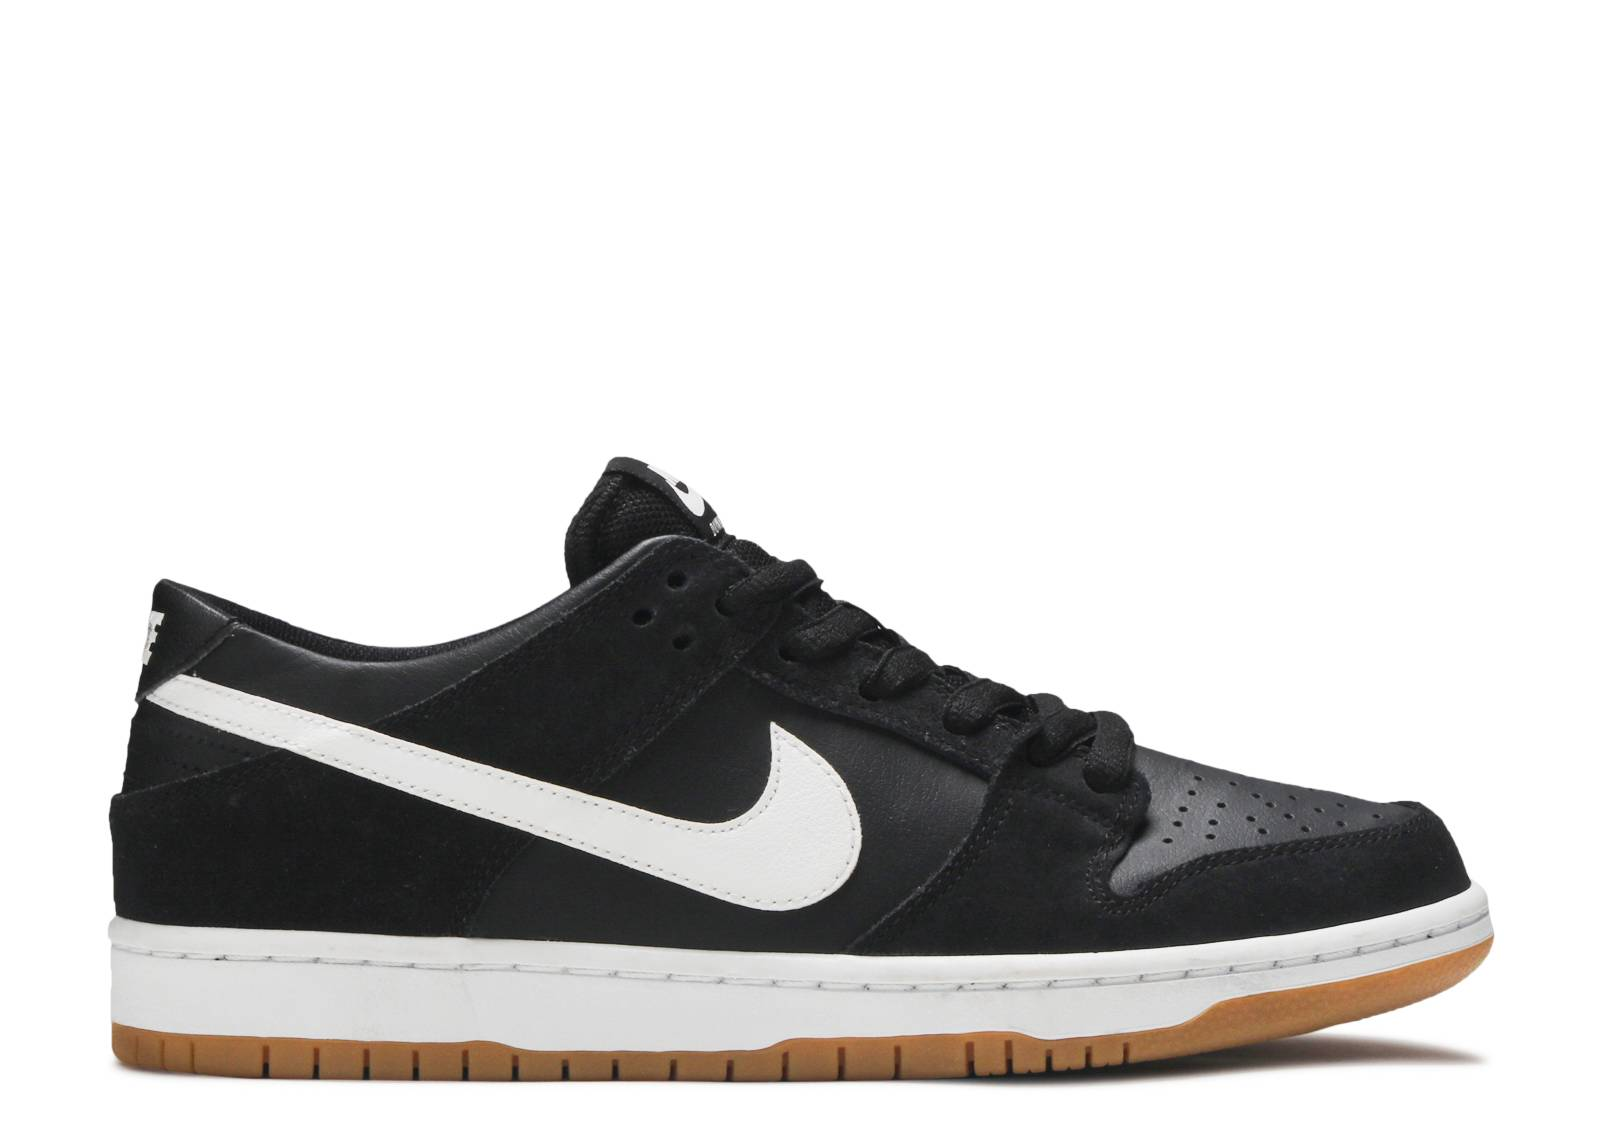 nike sb dunk low black and white ,toddler nike shoes